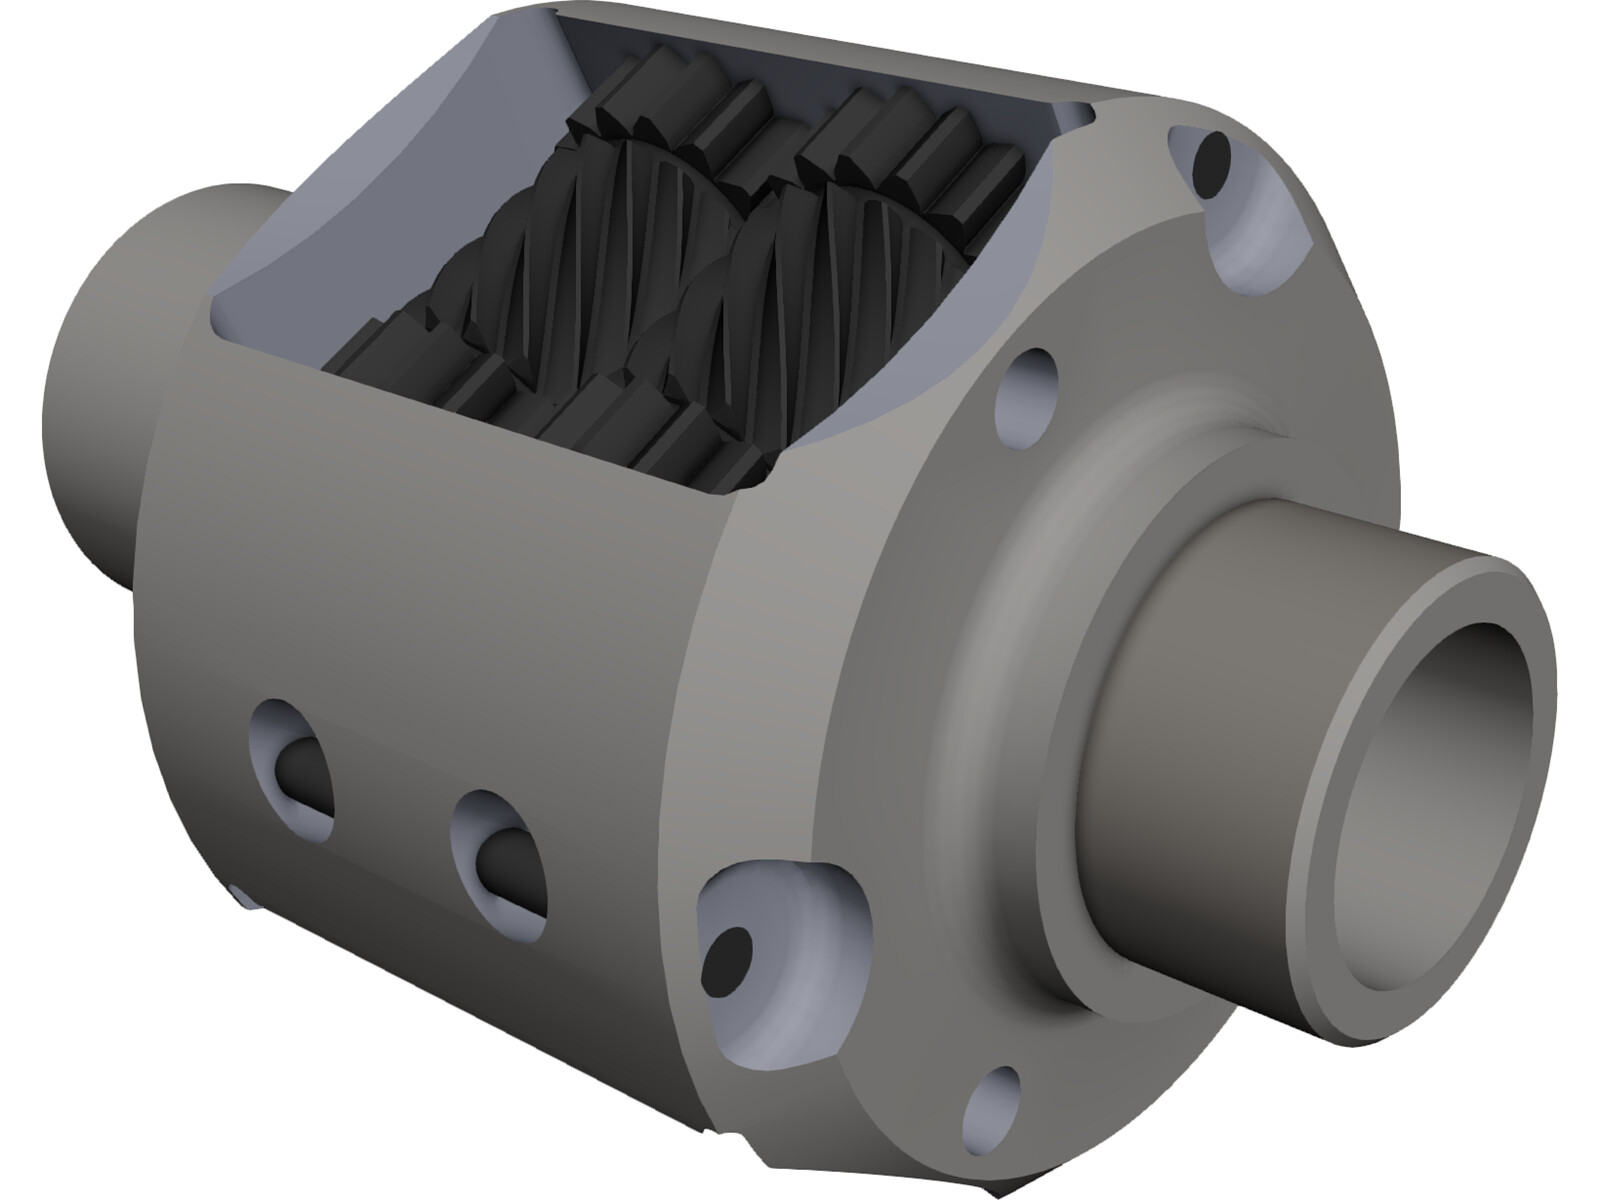 TORSEN Differential 3D CAD Model